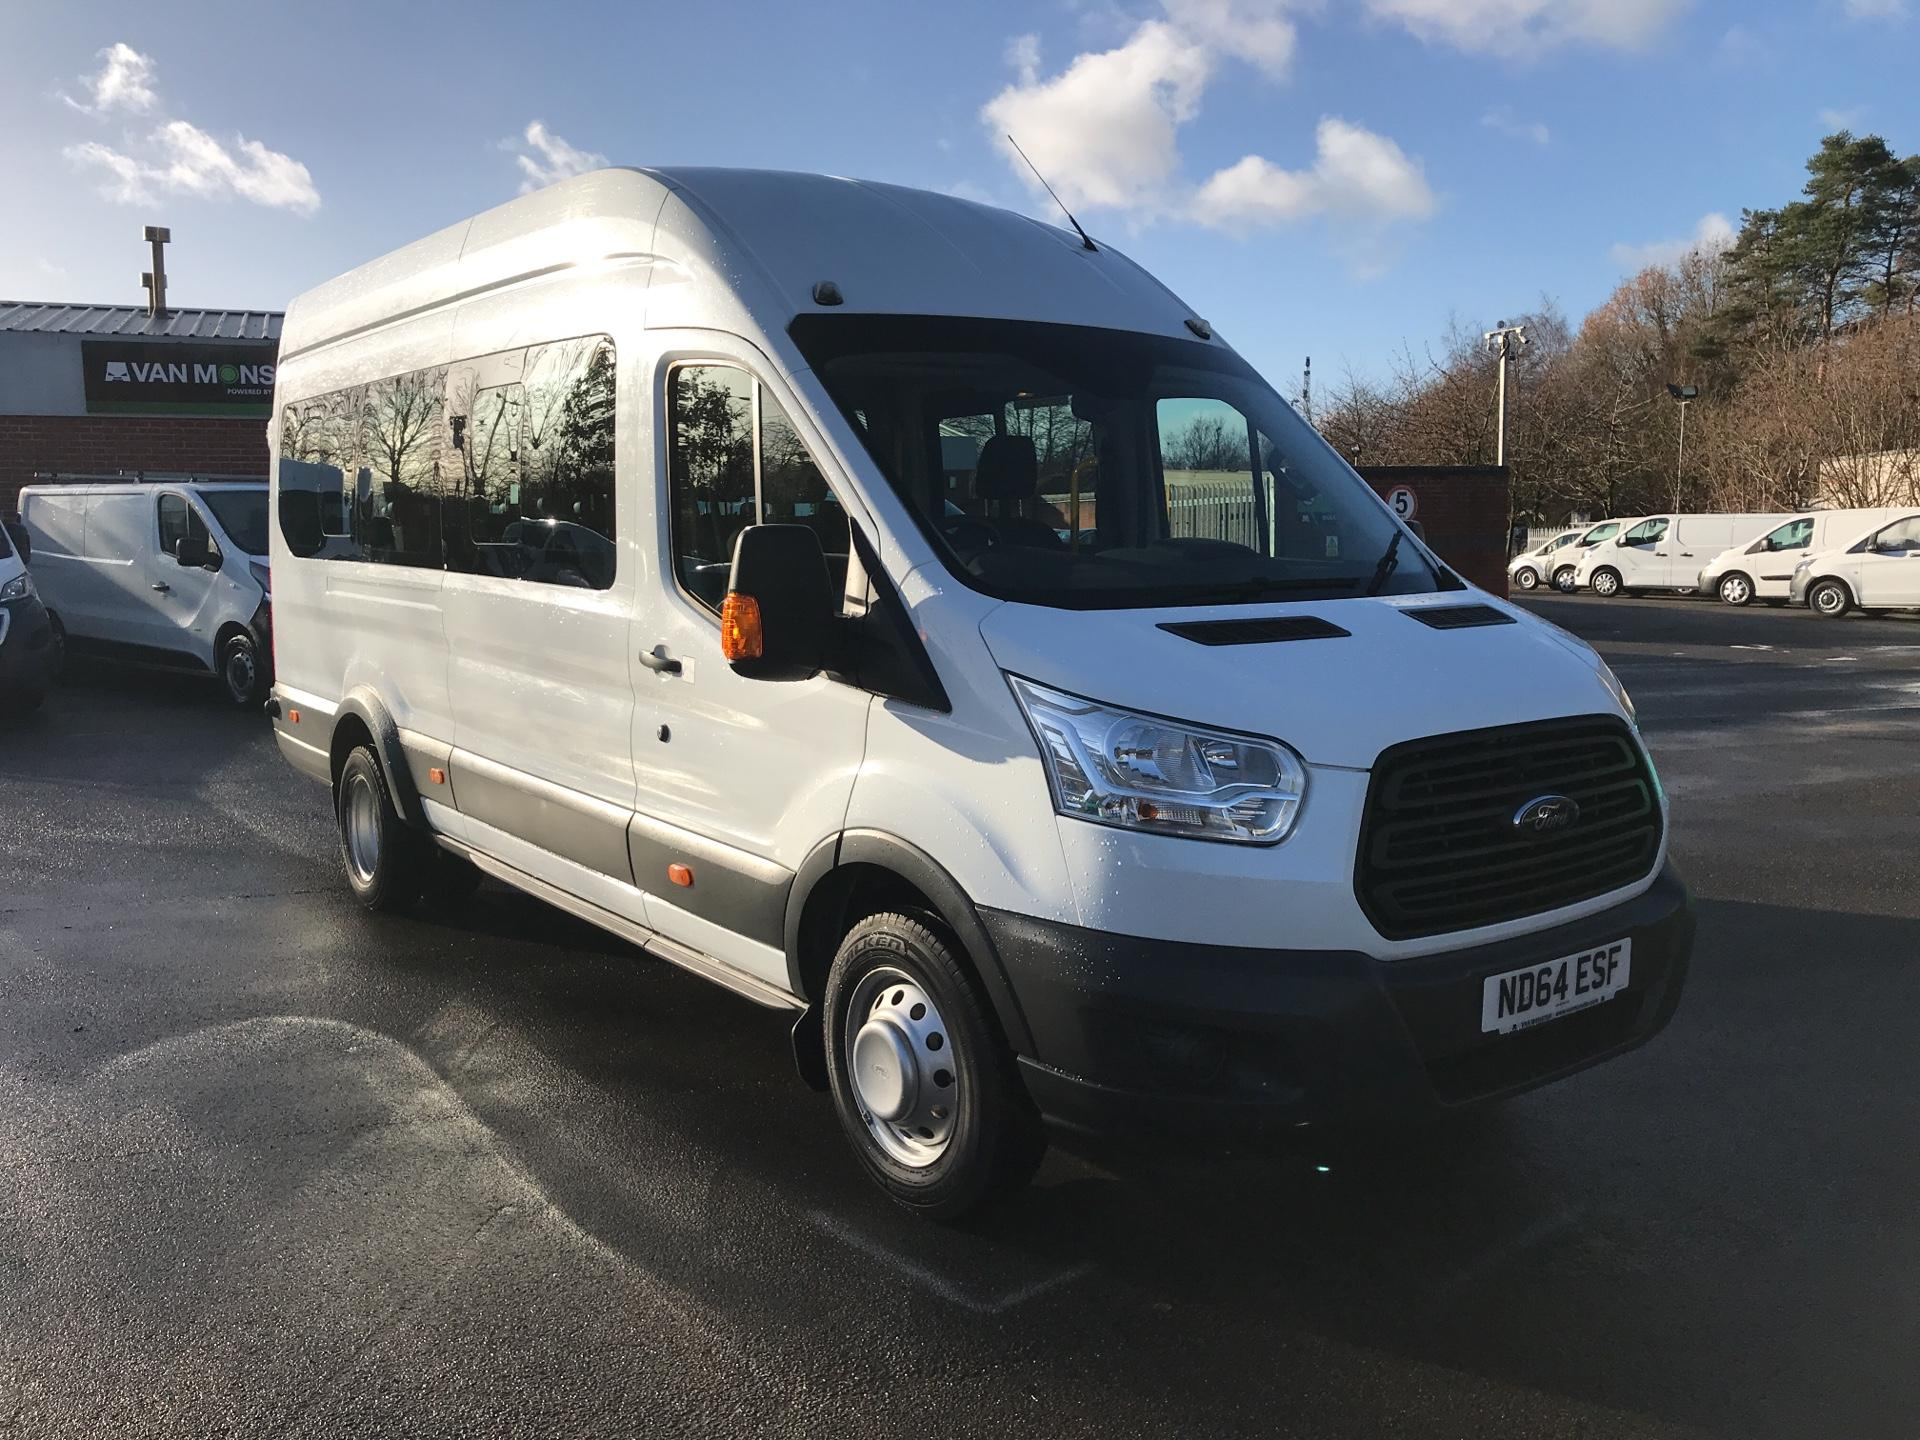 2015 Ford Transit 2.2 Tdci 125Ps H3 17 Seater (ND64ESF)